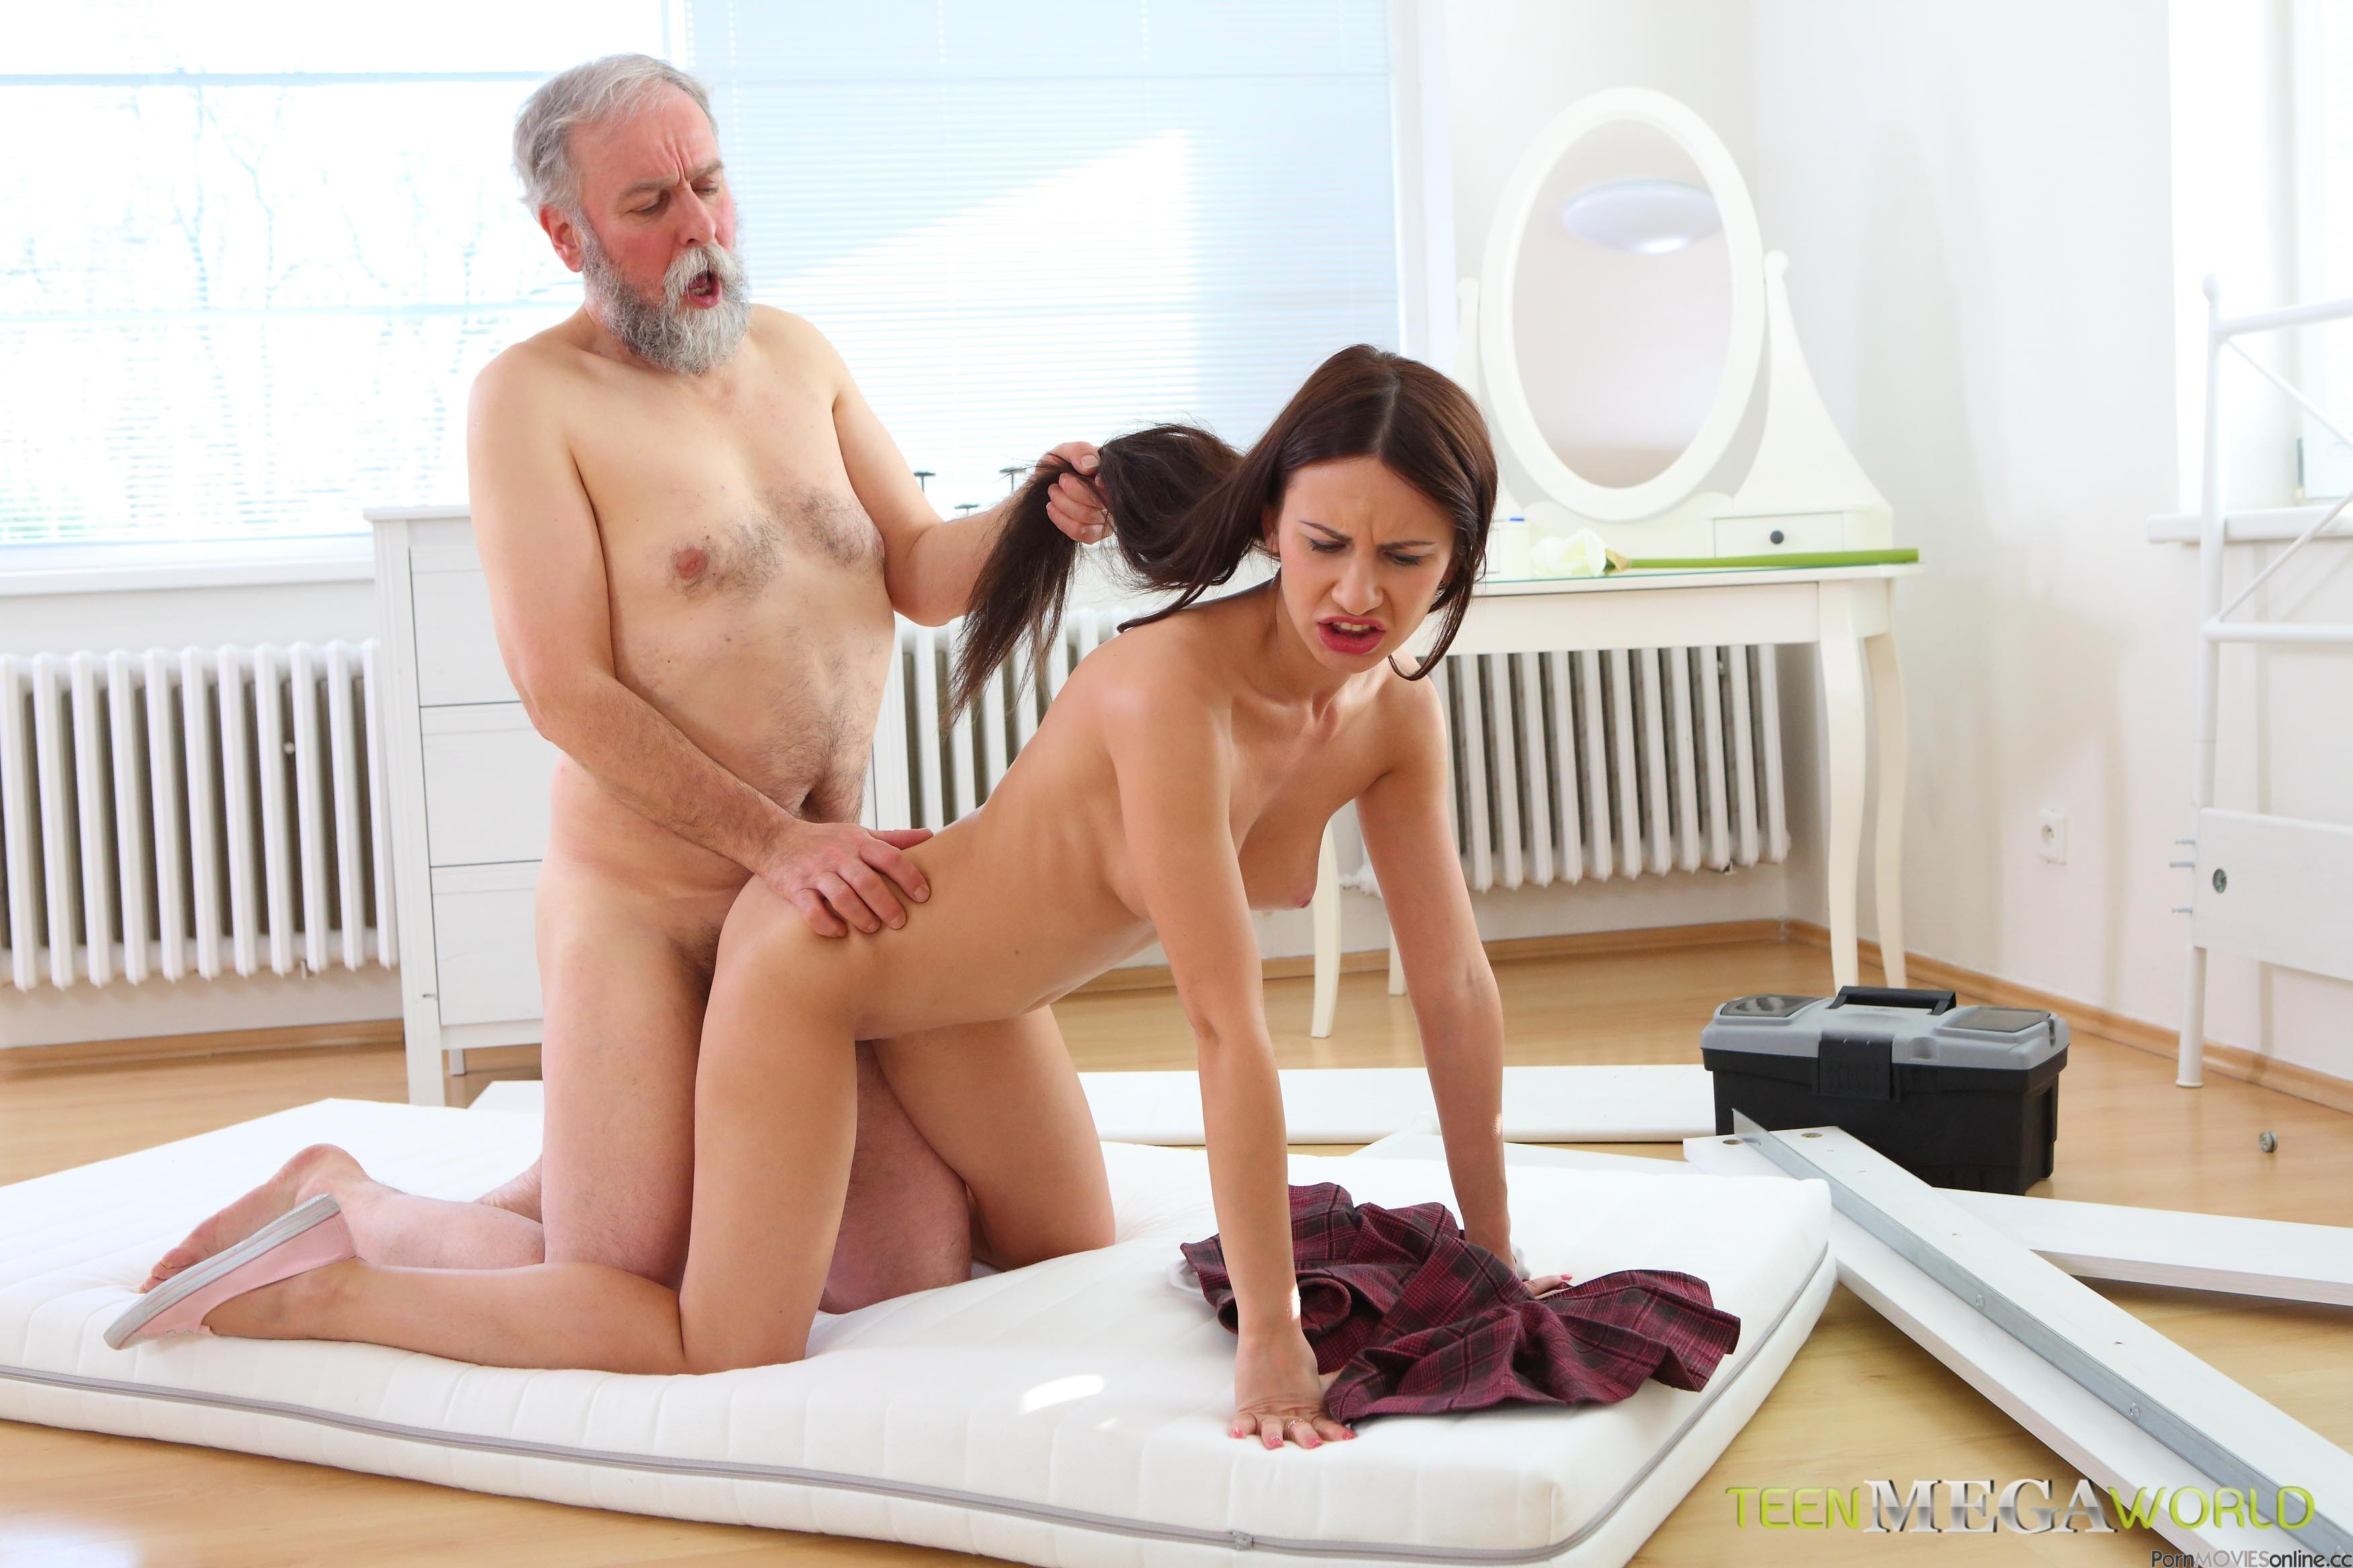 intelligible message Bravo, latina milf shows off her amazing body your business!